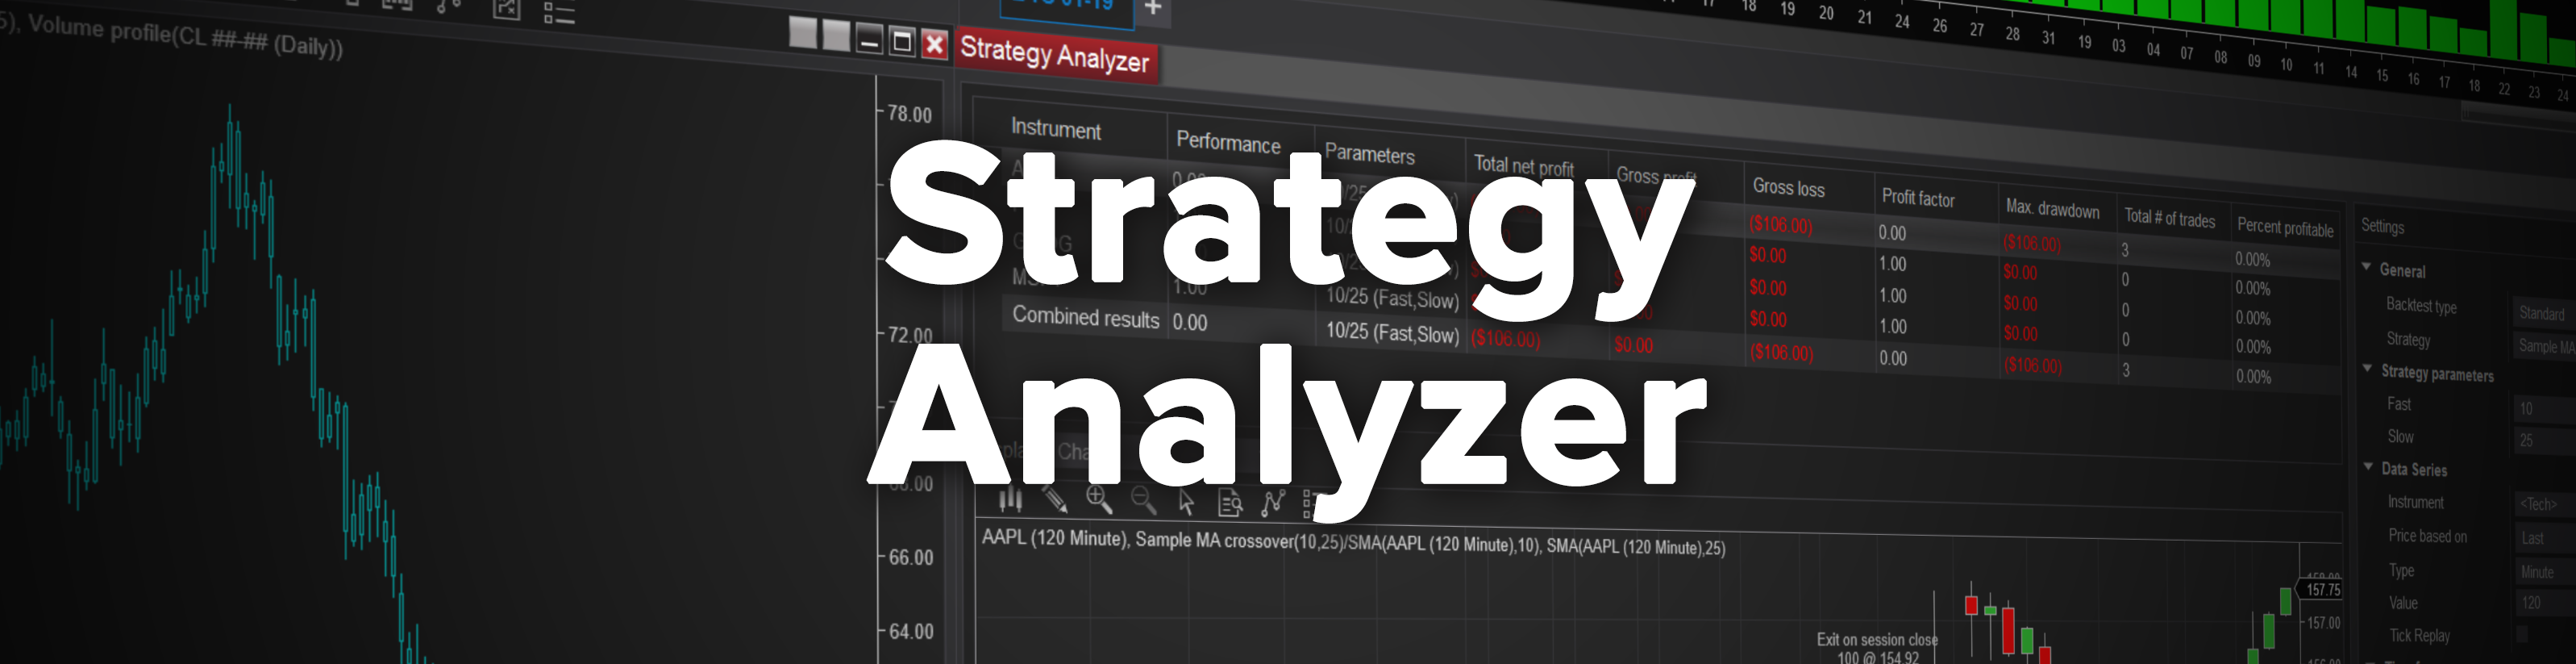 automated strategies backtest optimize